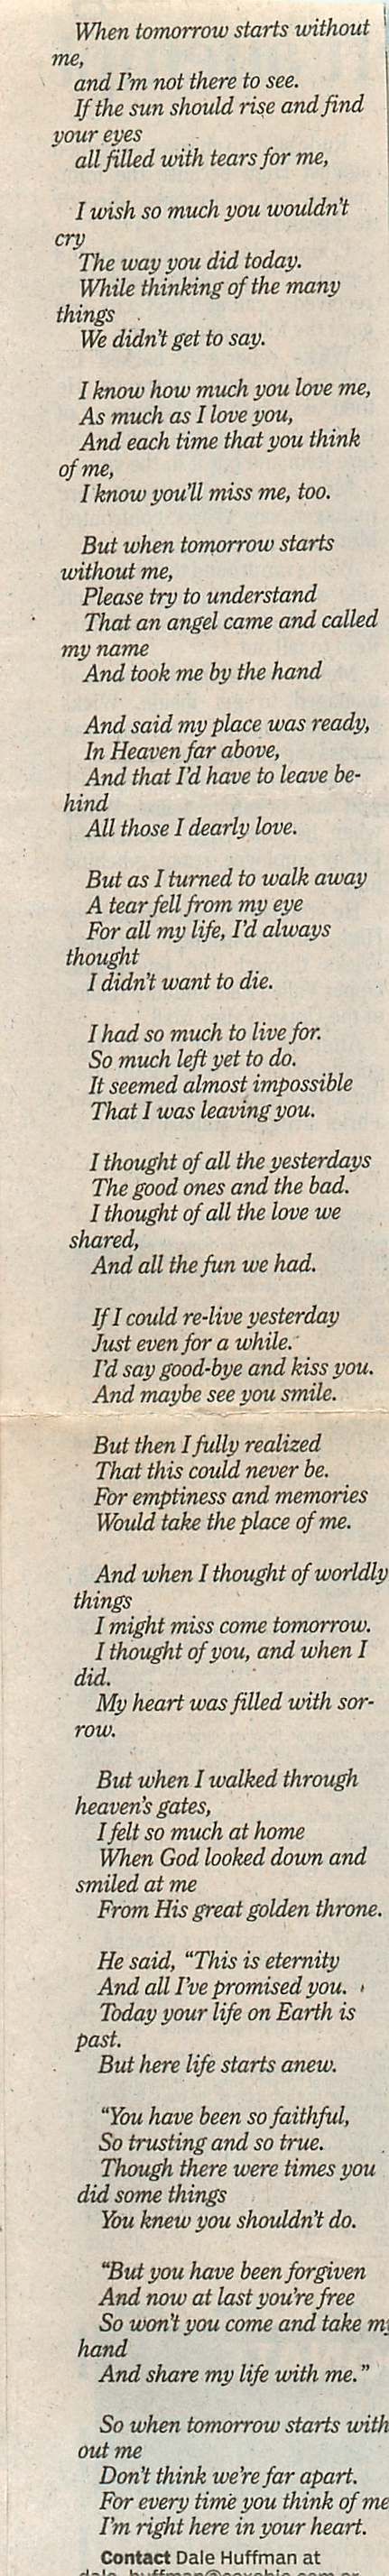 When tomorrow starts without me. I found this poem clipping in my Mother's bible after she died.